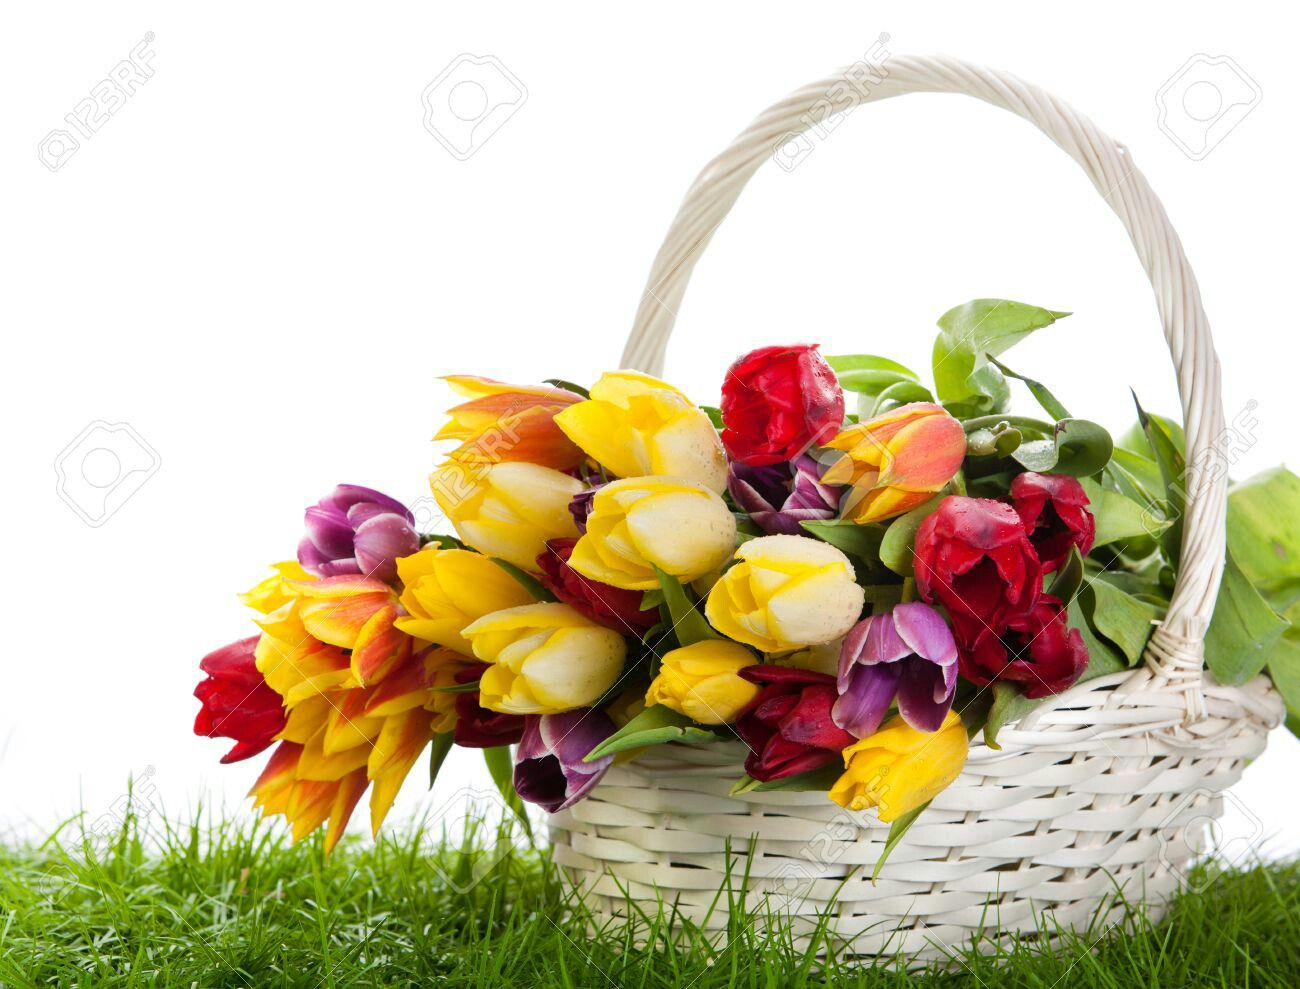 Pin by made on ses and flowers pinterest hamper image search beautiful flowers tulips research searching pretty flowers basket izmirmasajfo